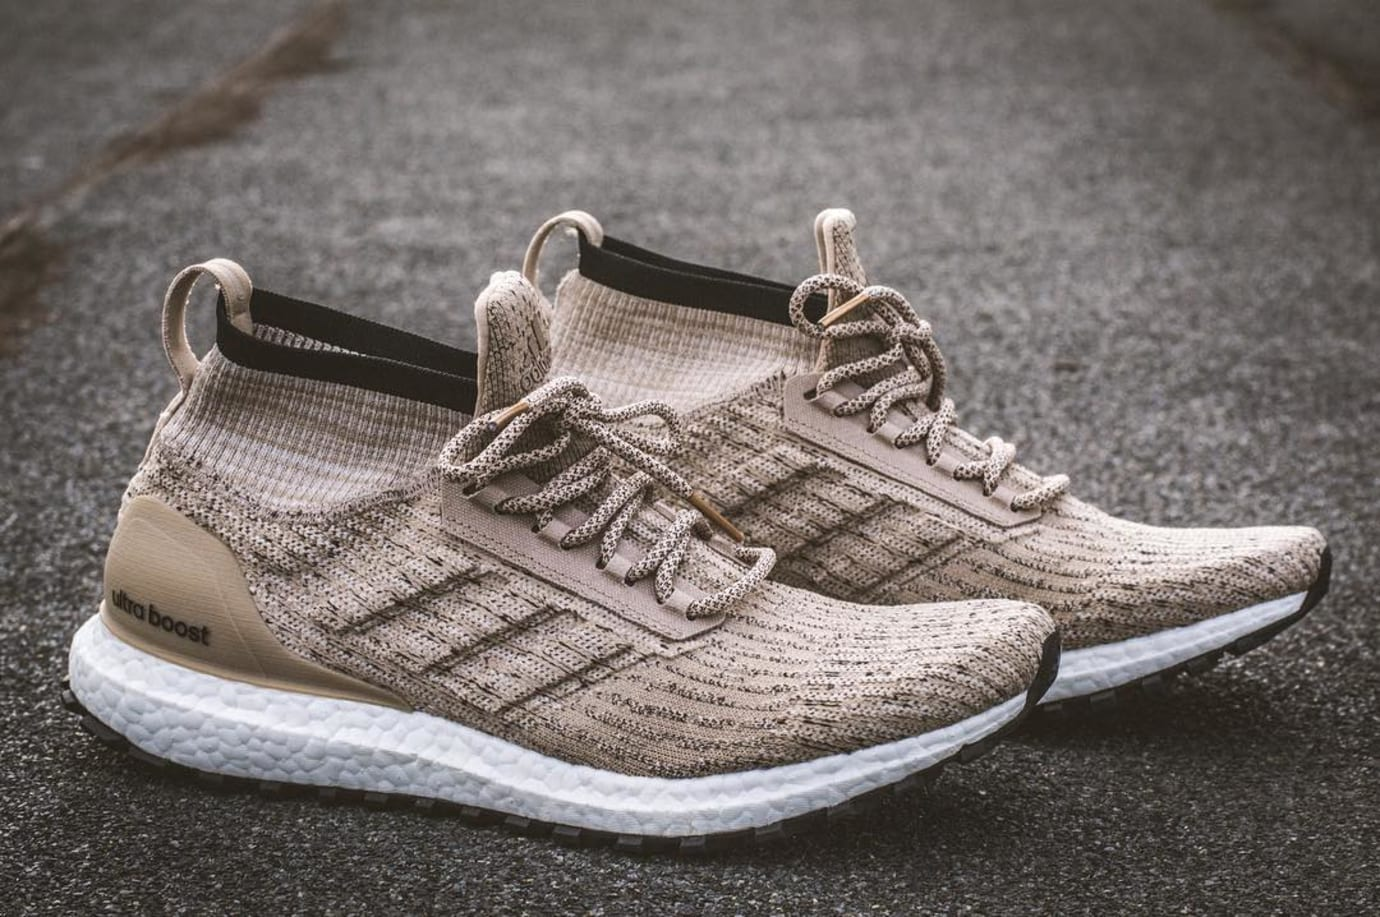 Adidas Ultra Boost ATR Mid Khaki Release Date Right